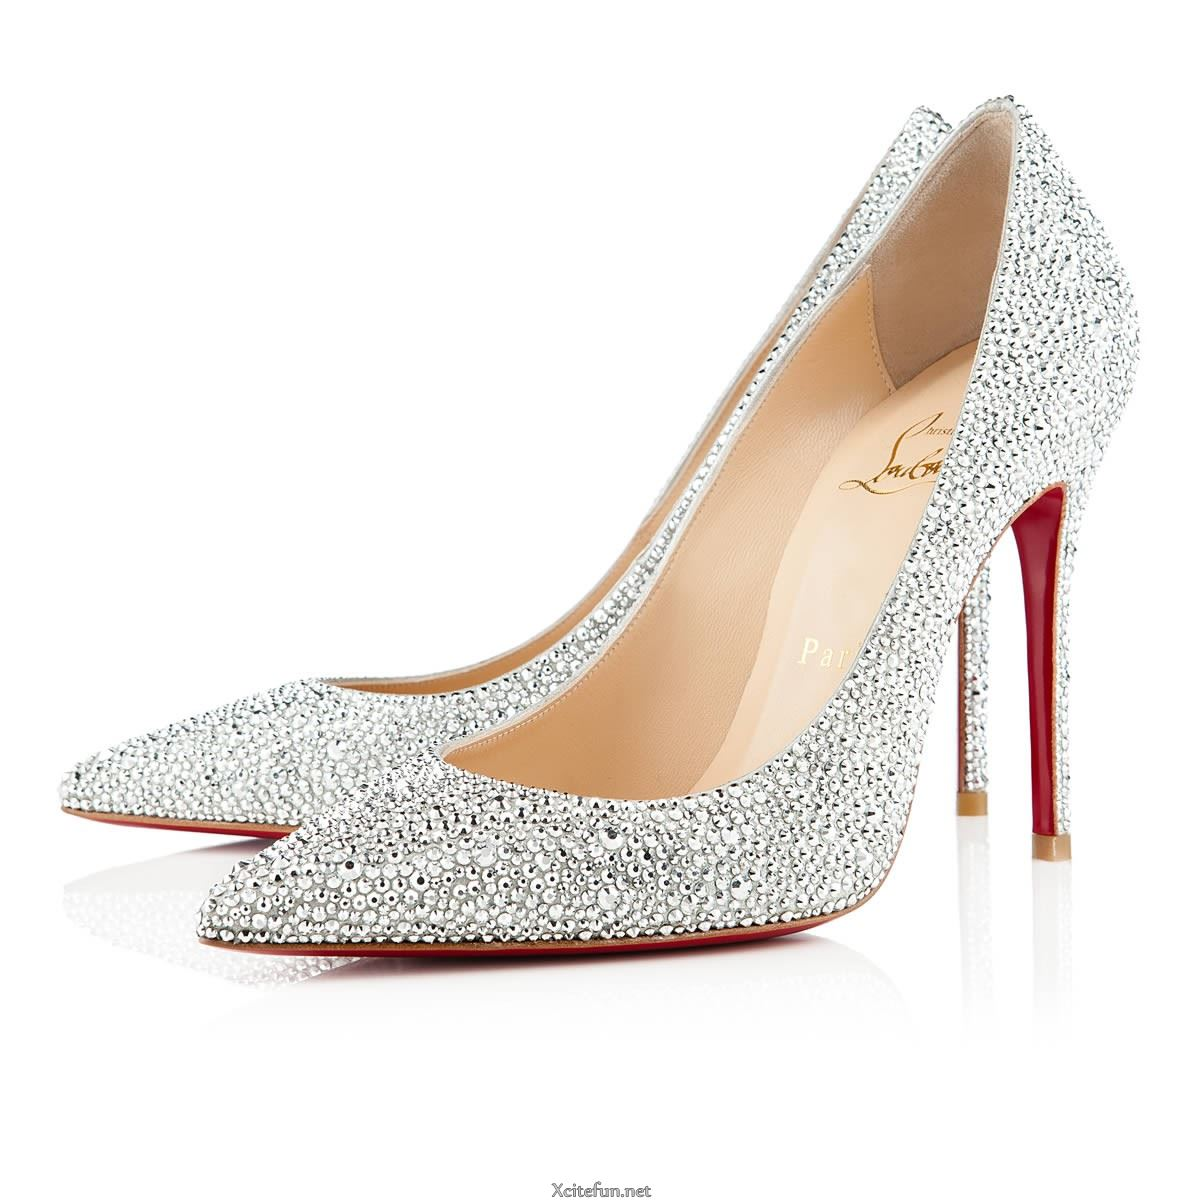 Christian Louboutin Was A Large Business Bnfg